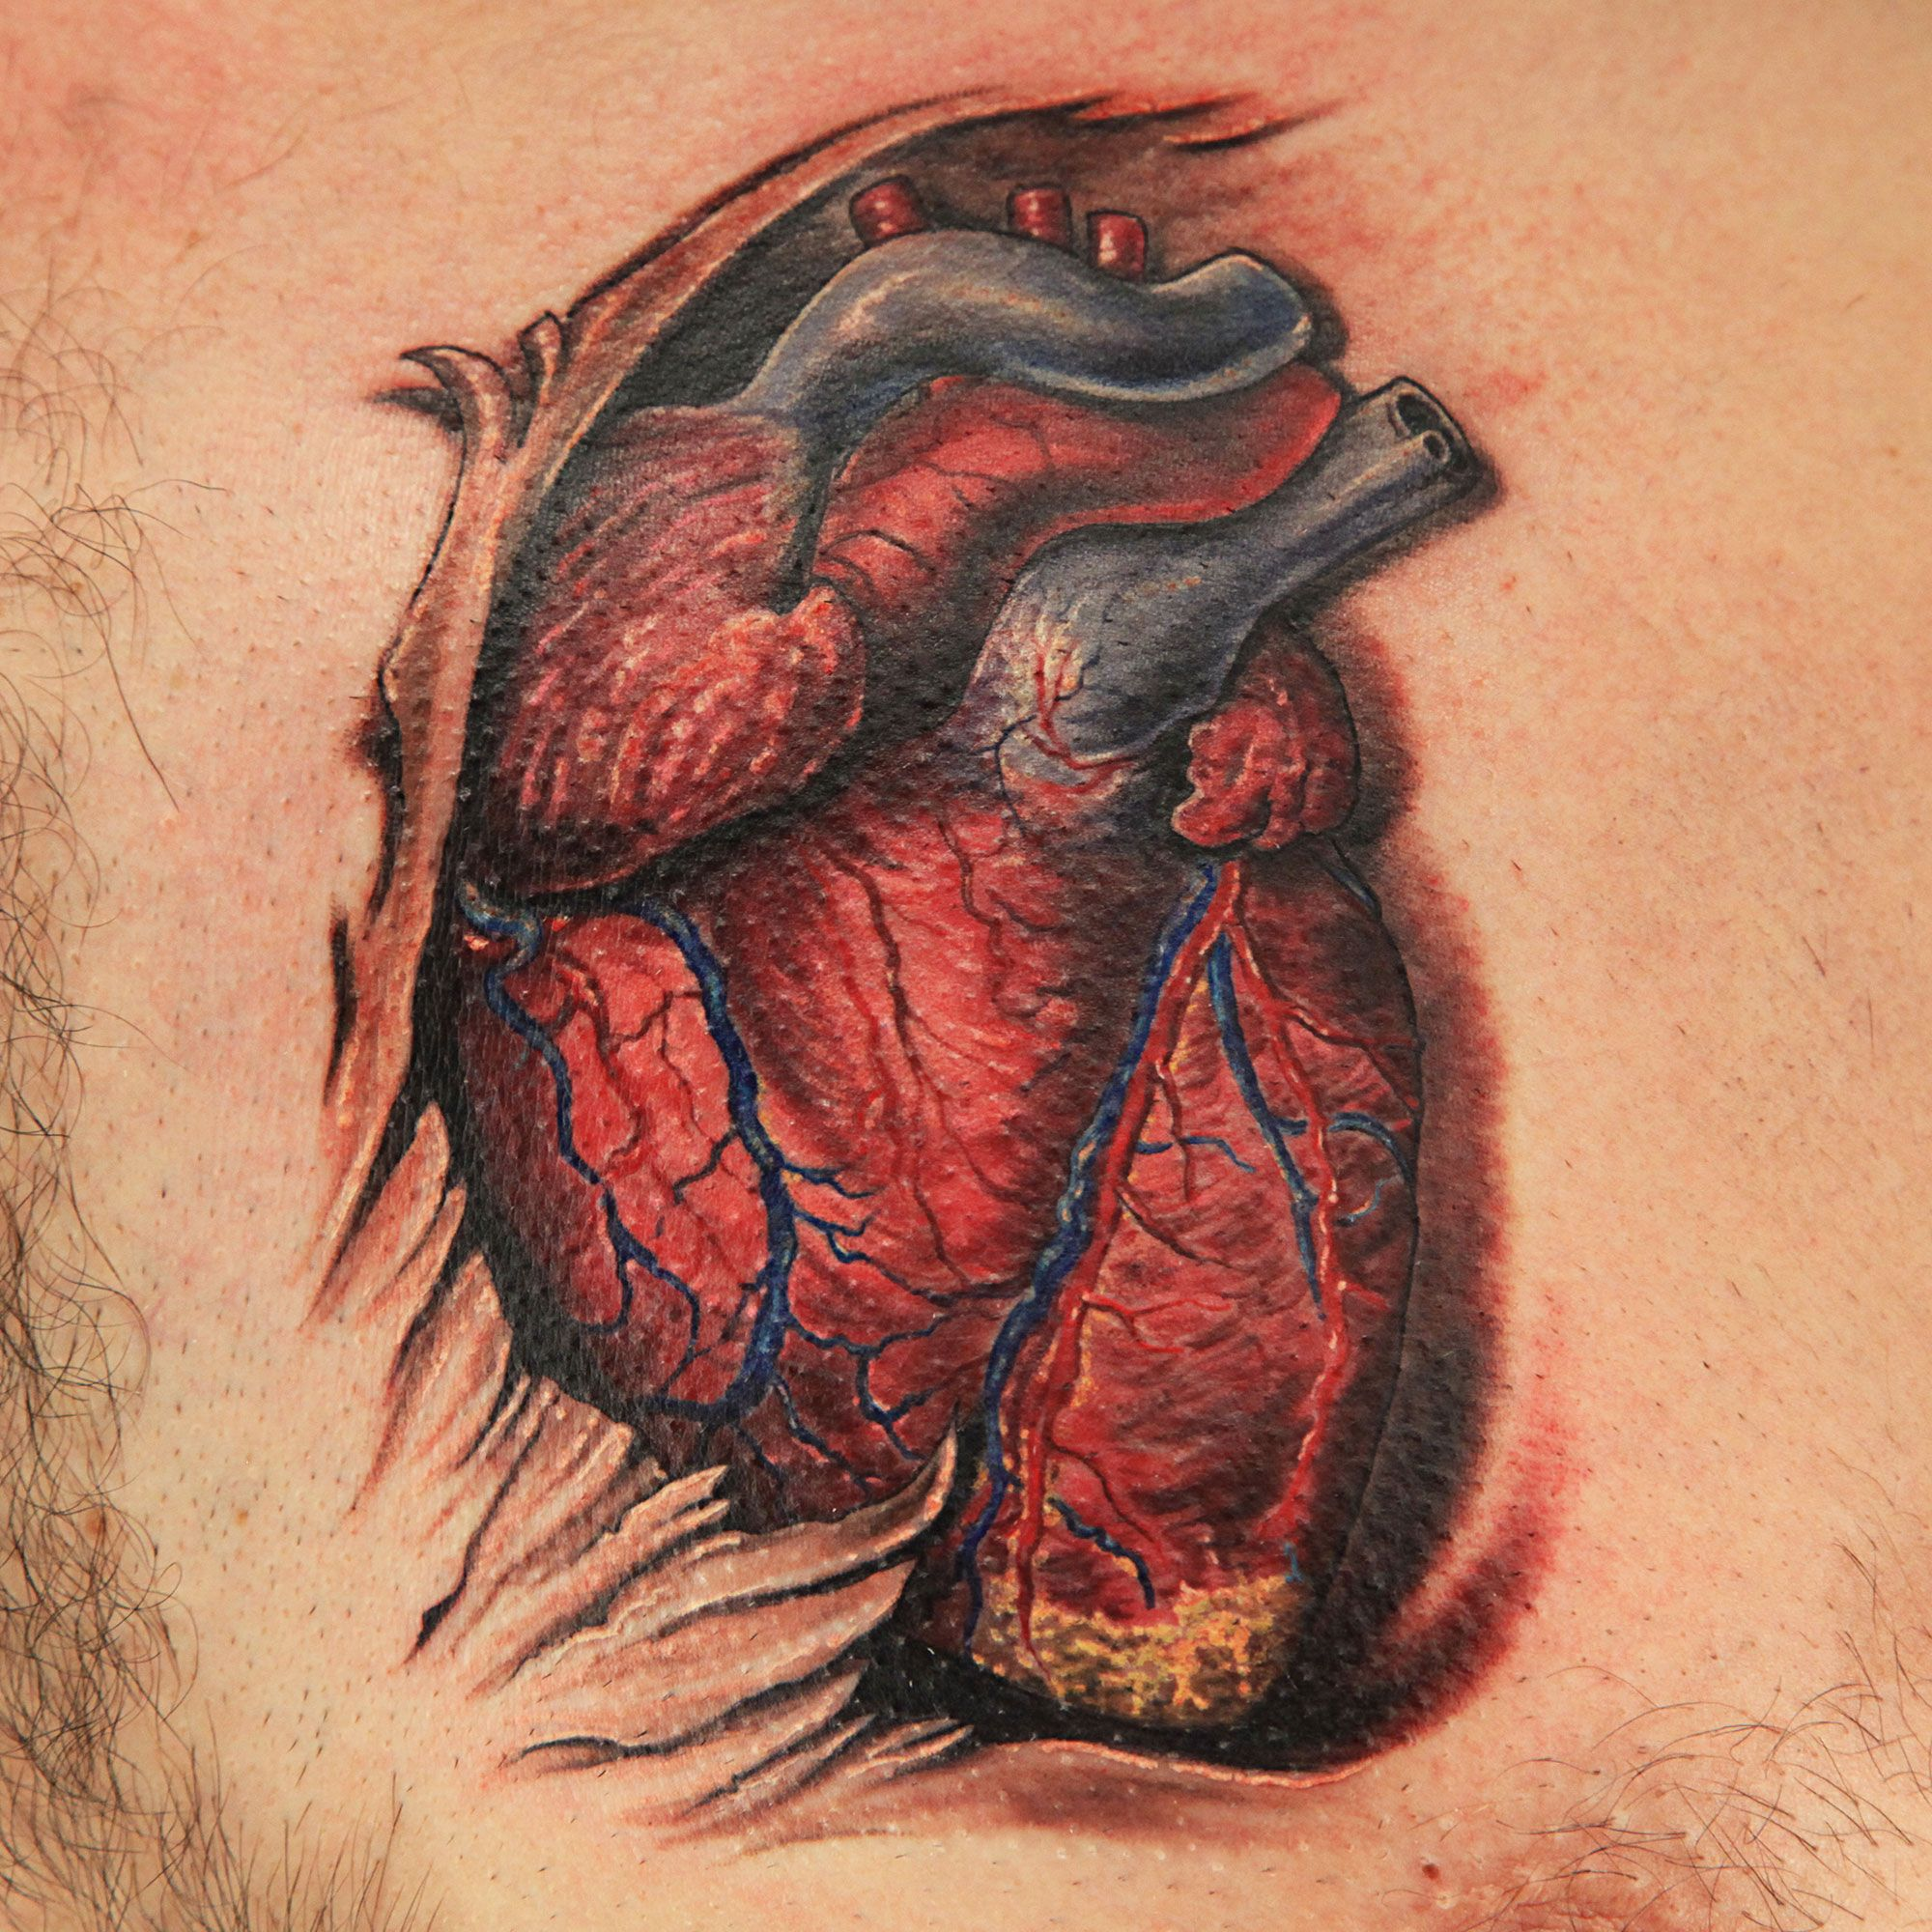 Realistic Medical Anatomical Tattoo by Joey Hamilton